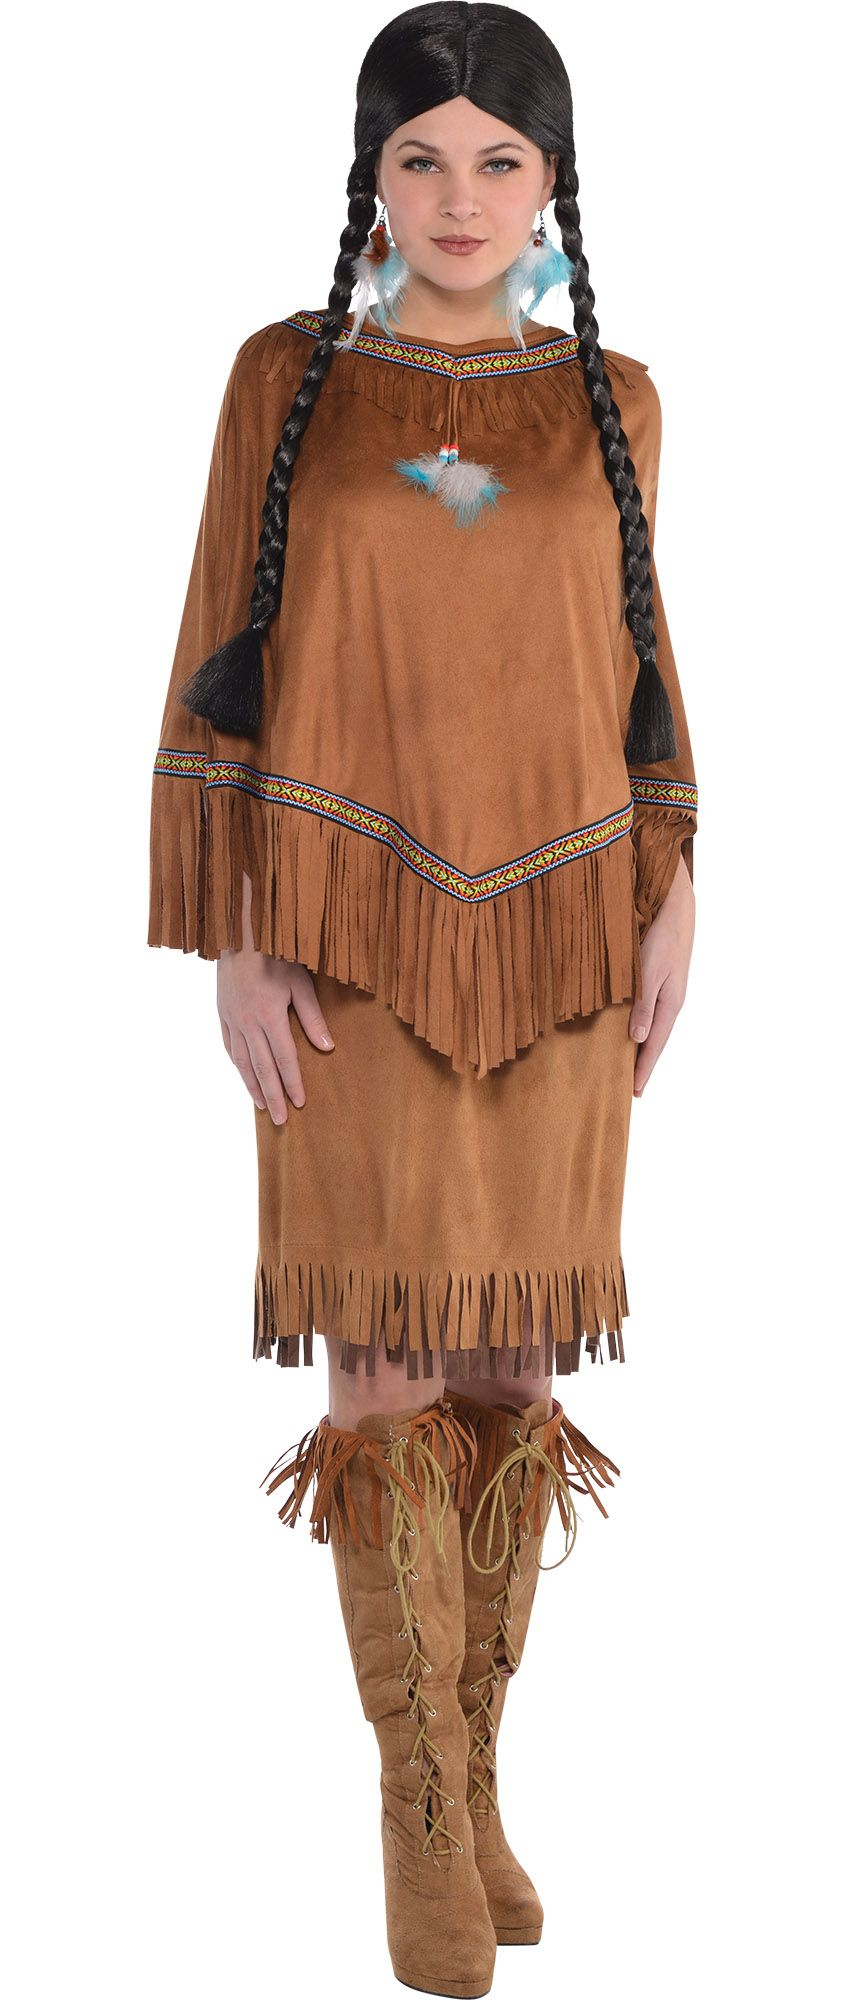 Create Your Look - Female Native American Indian